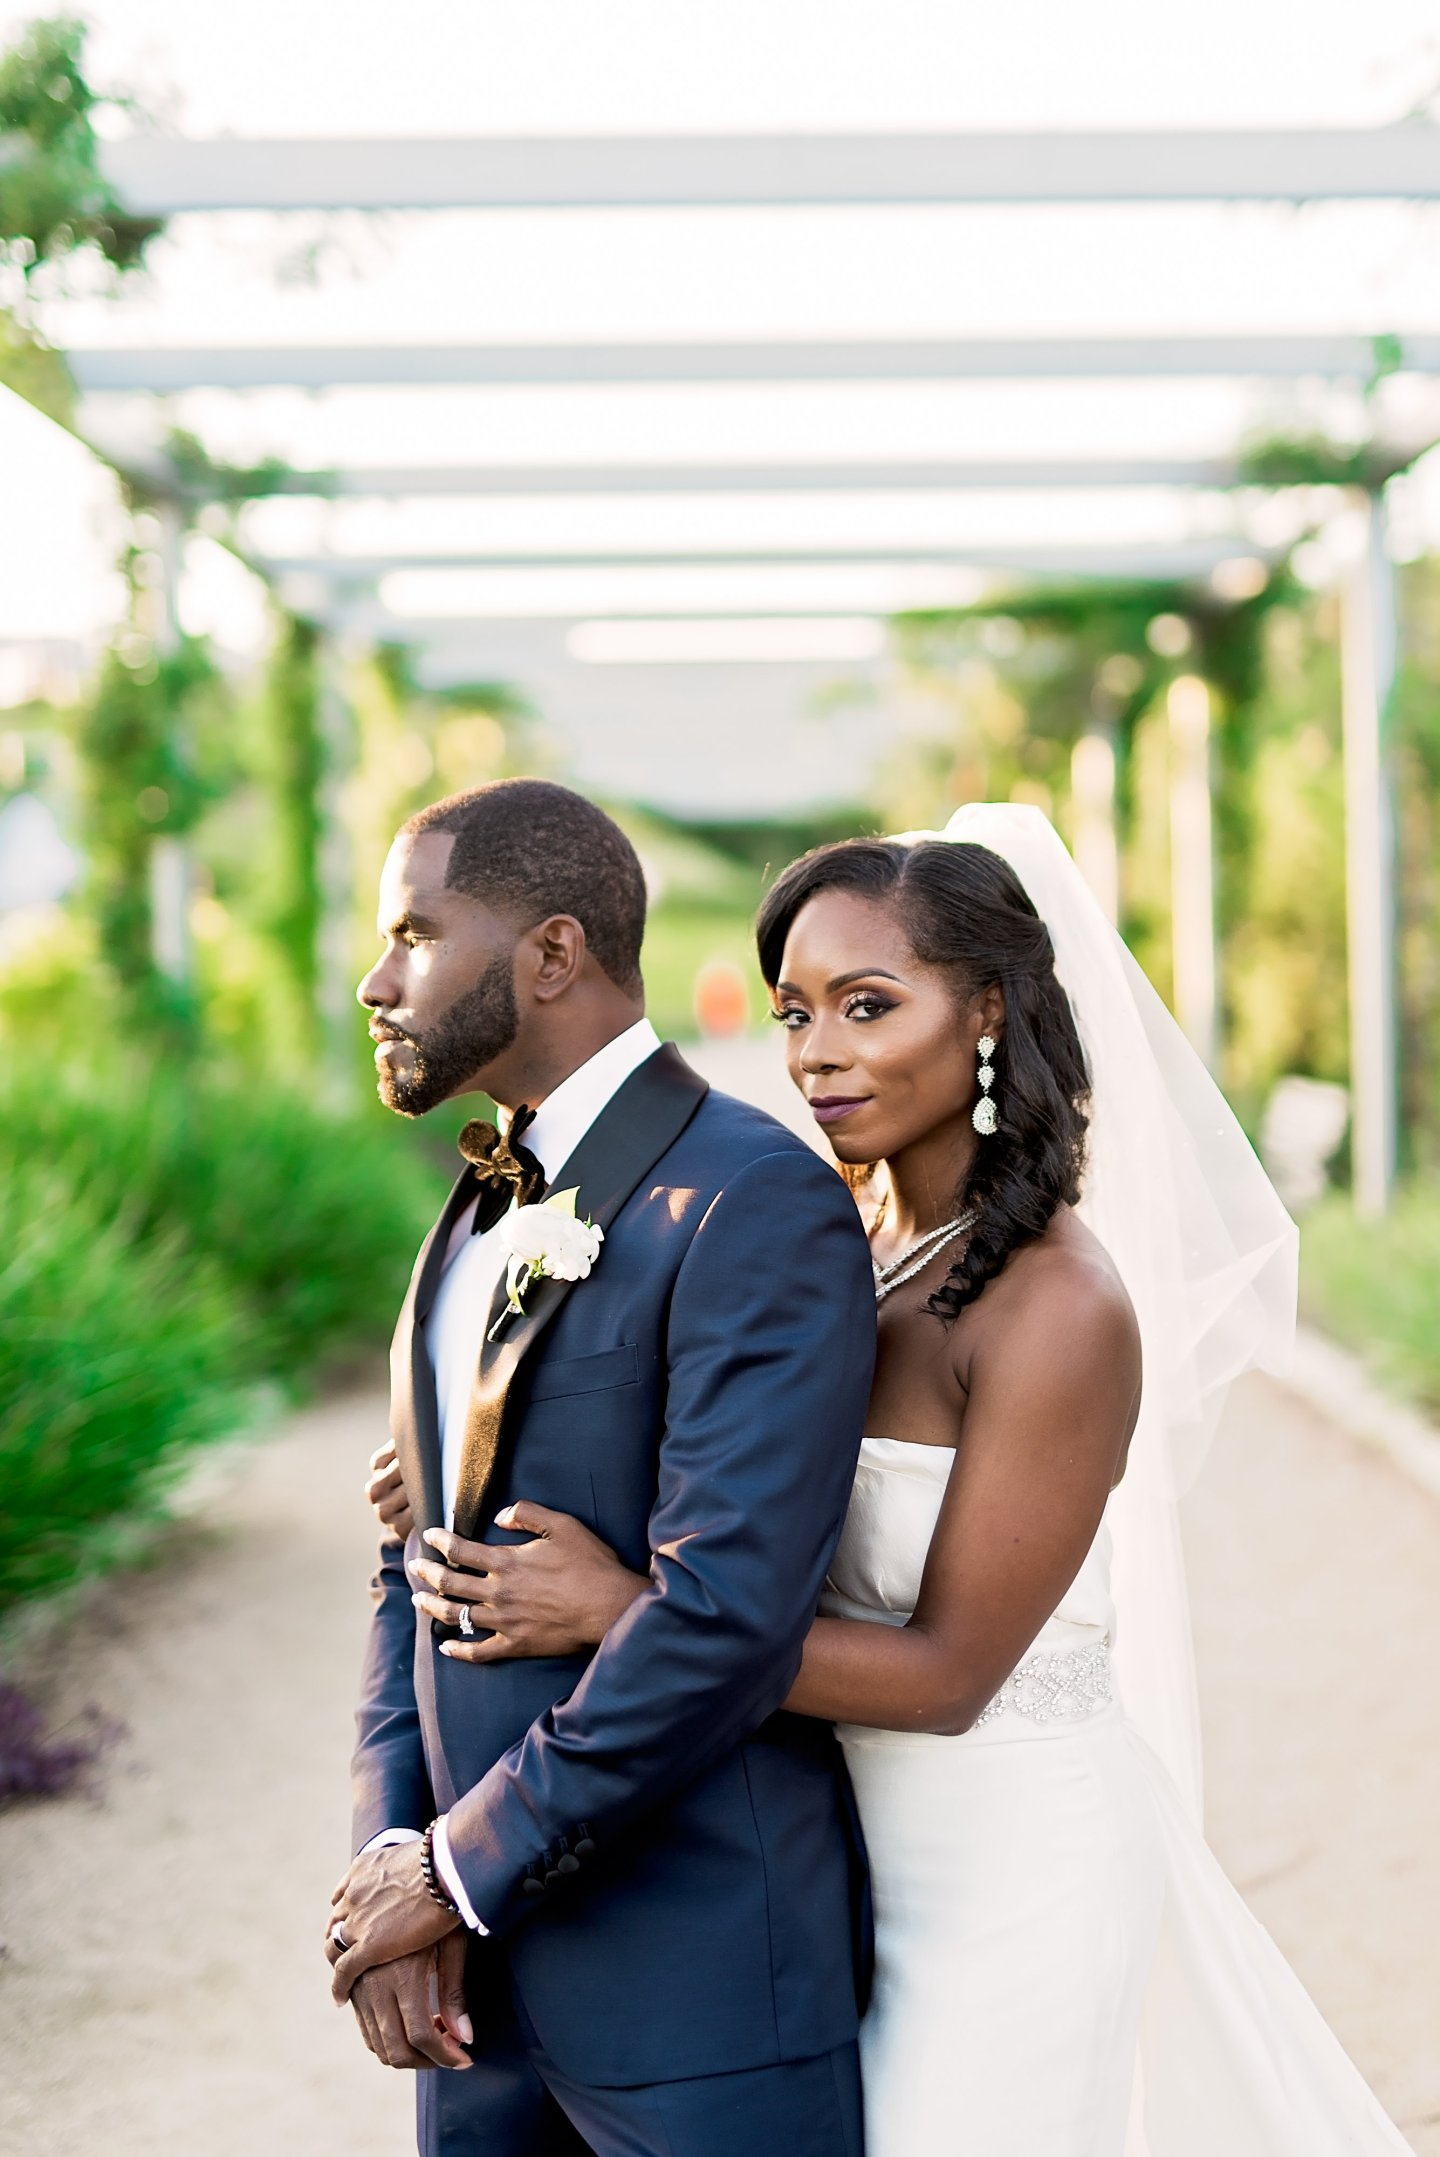 Andre-and-Gina-Pharris-Photography-0058 Houston, TX Wedding at the Buffalo Soldier Museum